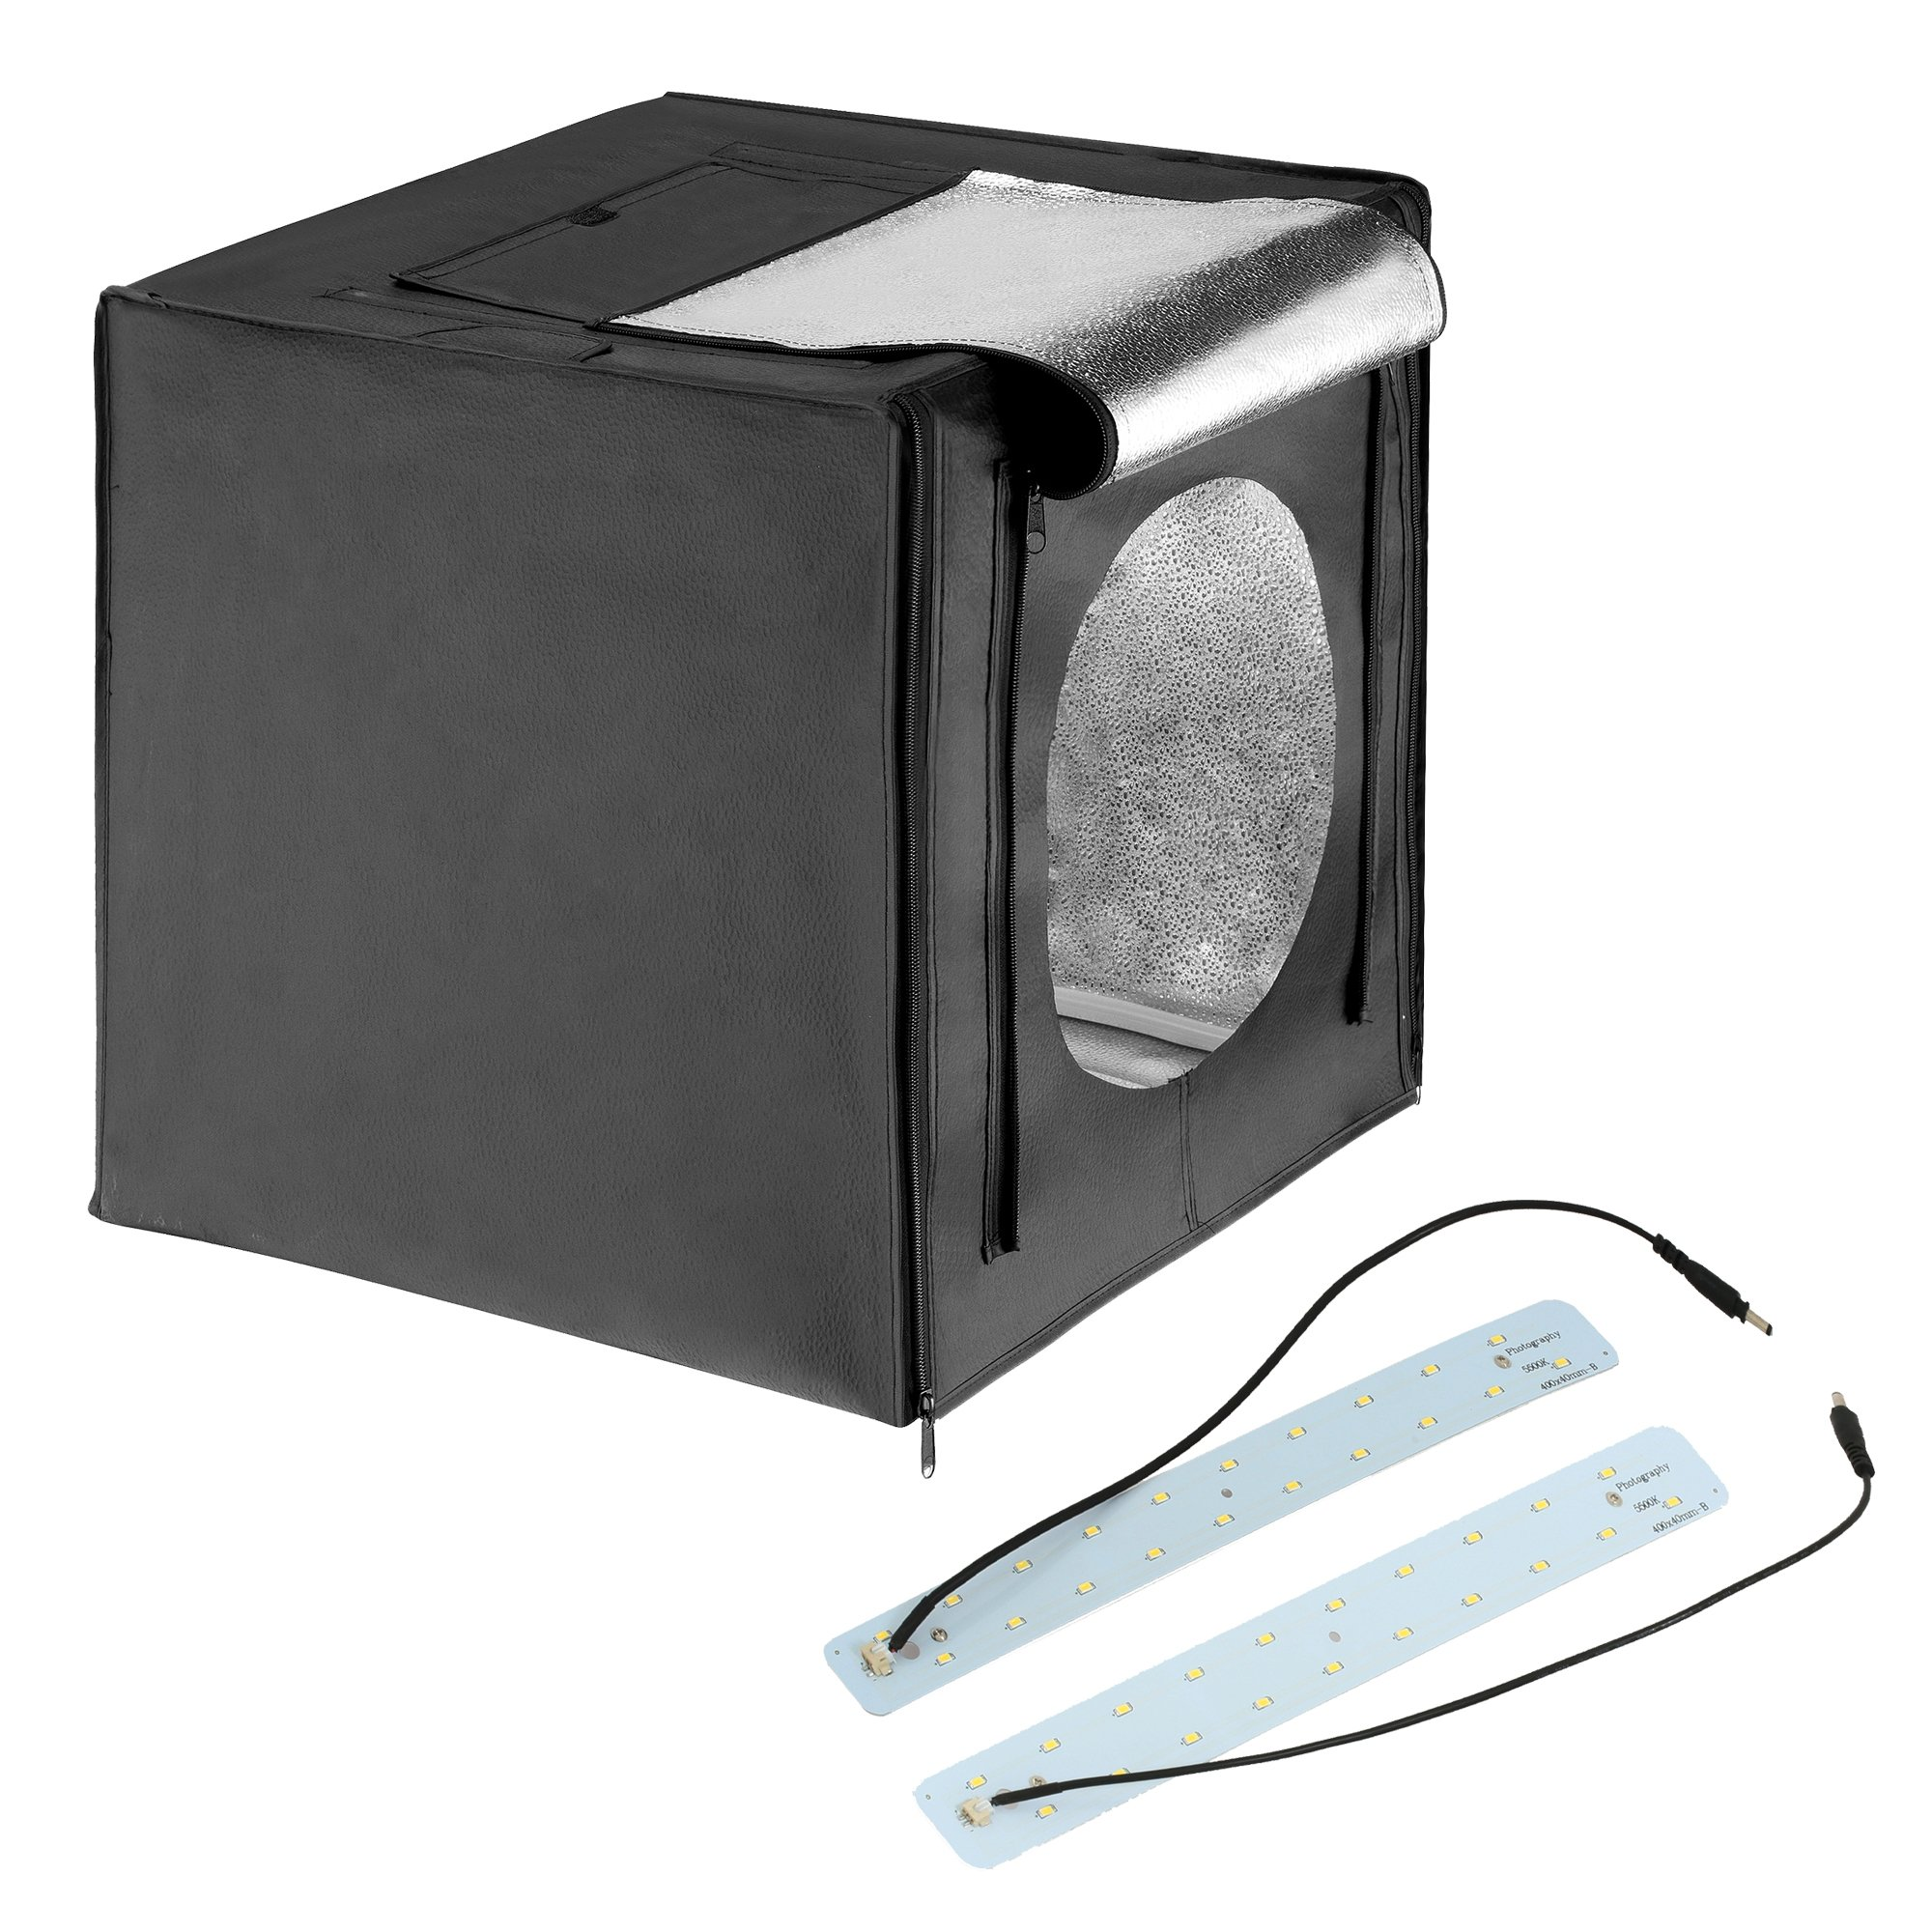 Square Perfect 16 Inch LED Photo Studio in A Box w/4 Color Backdrops Pro Quality by SQUARE PERFECT